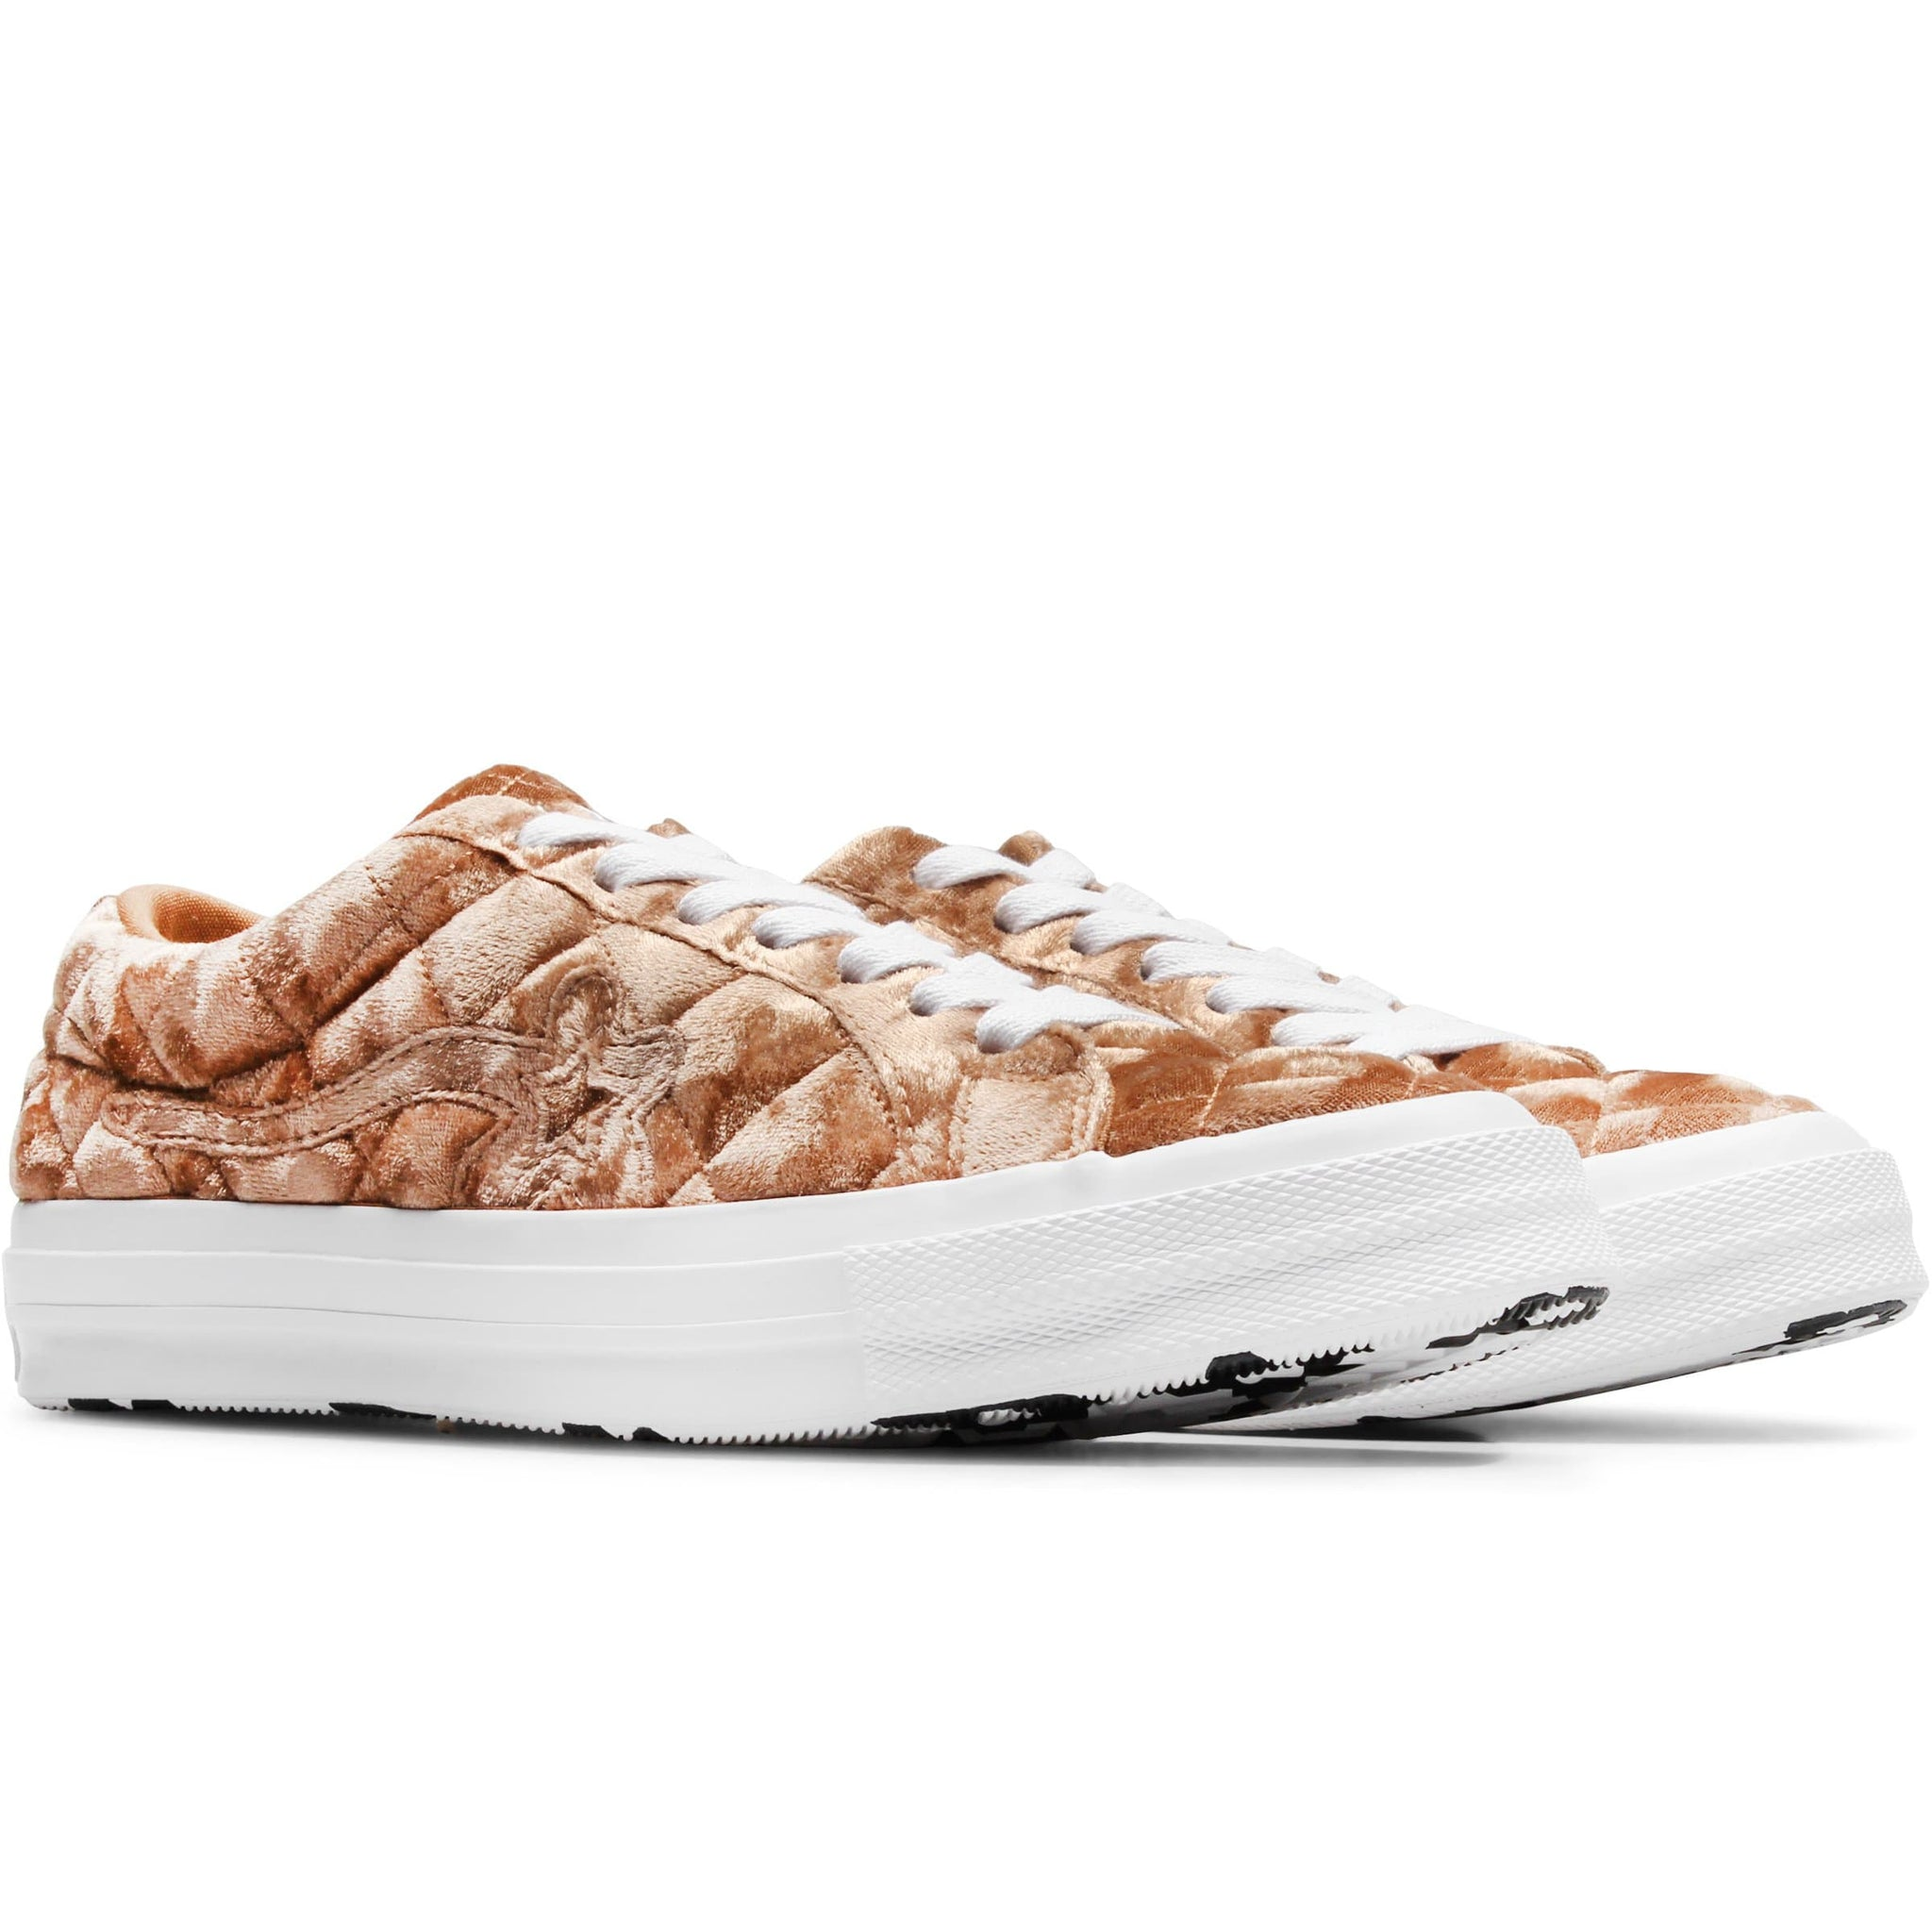 d81b80a10b0 Converse GOLF LE FLEUR OX Brown Sugar/Brown Sugar